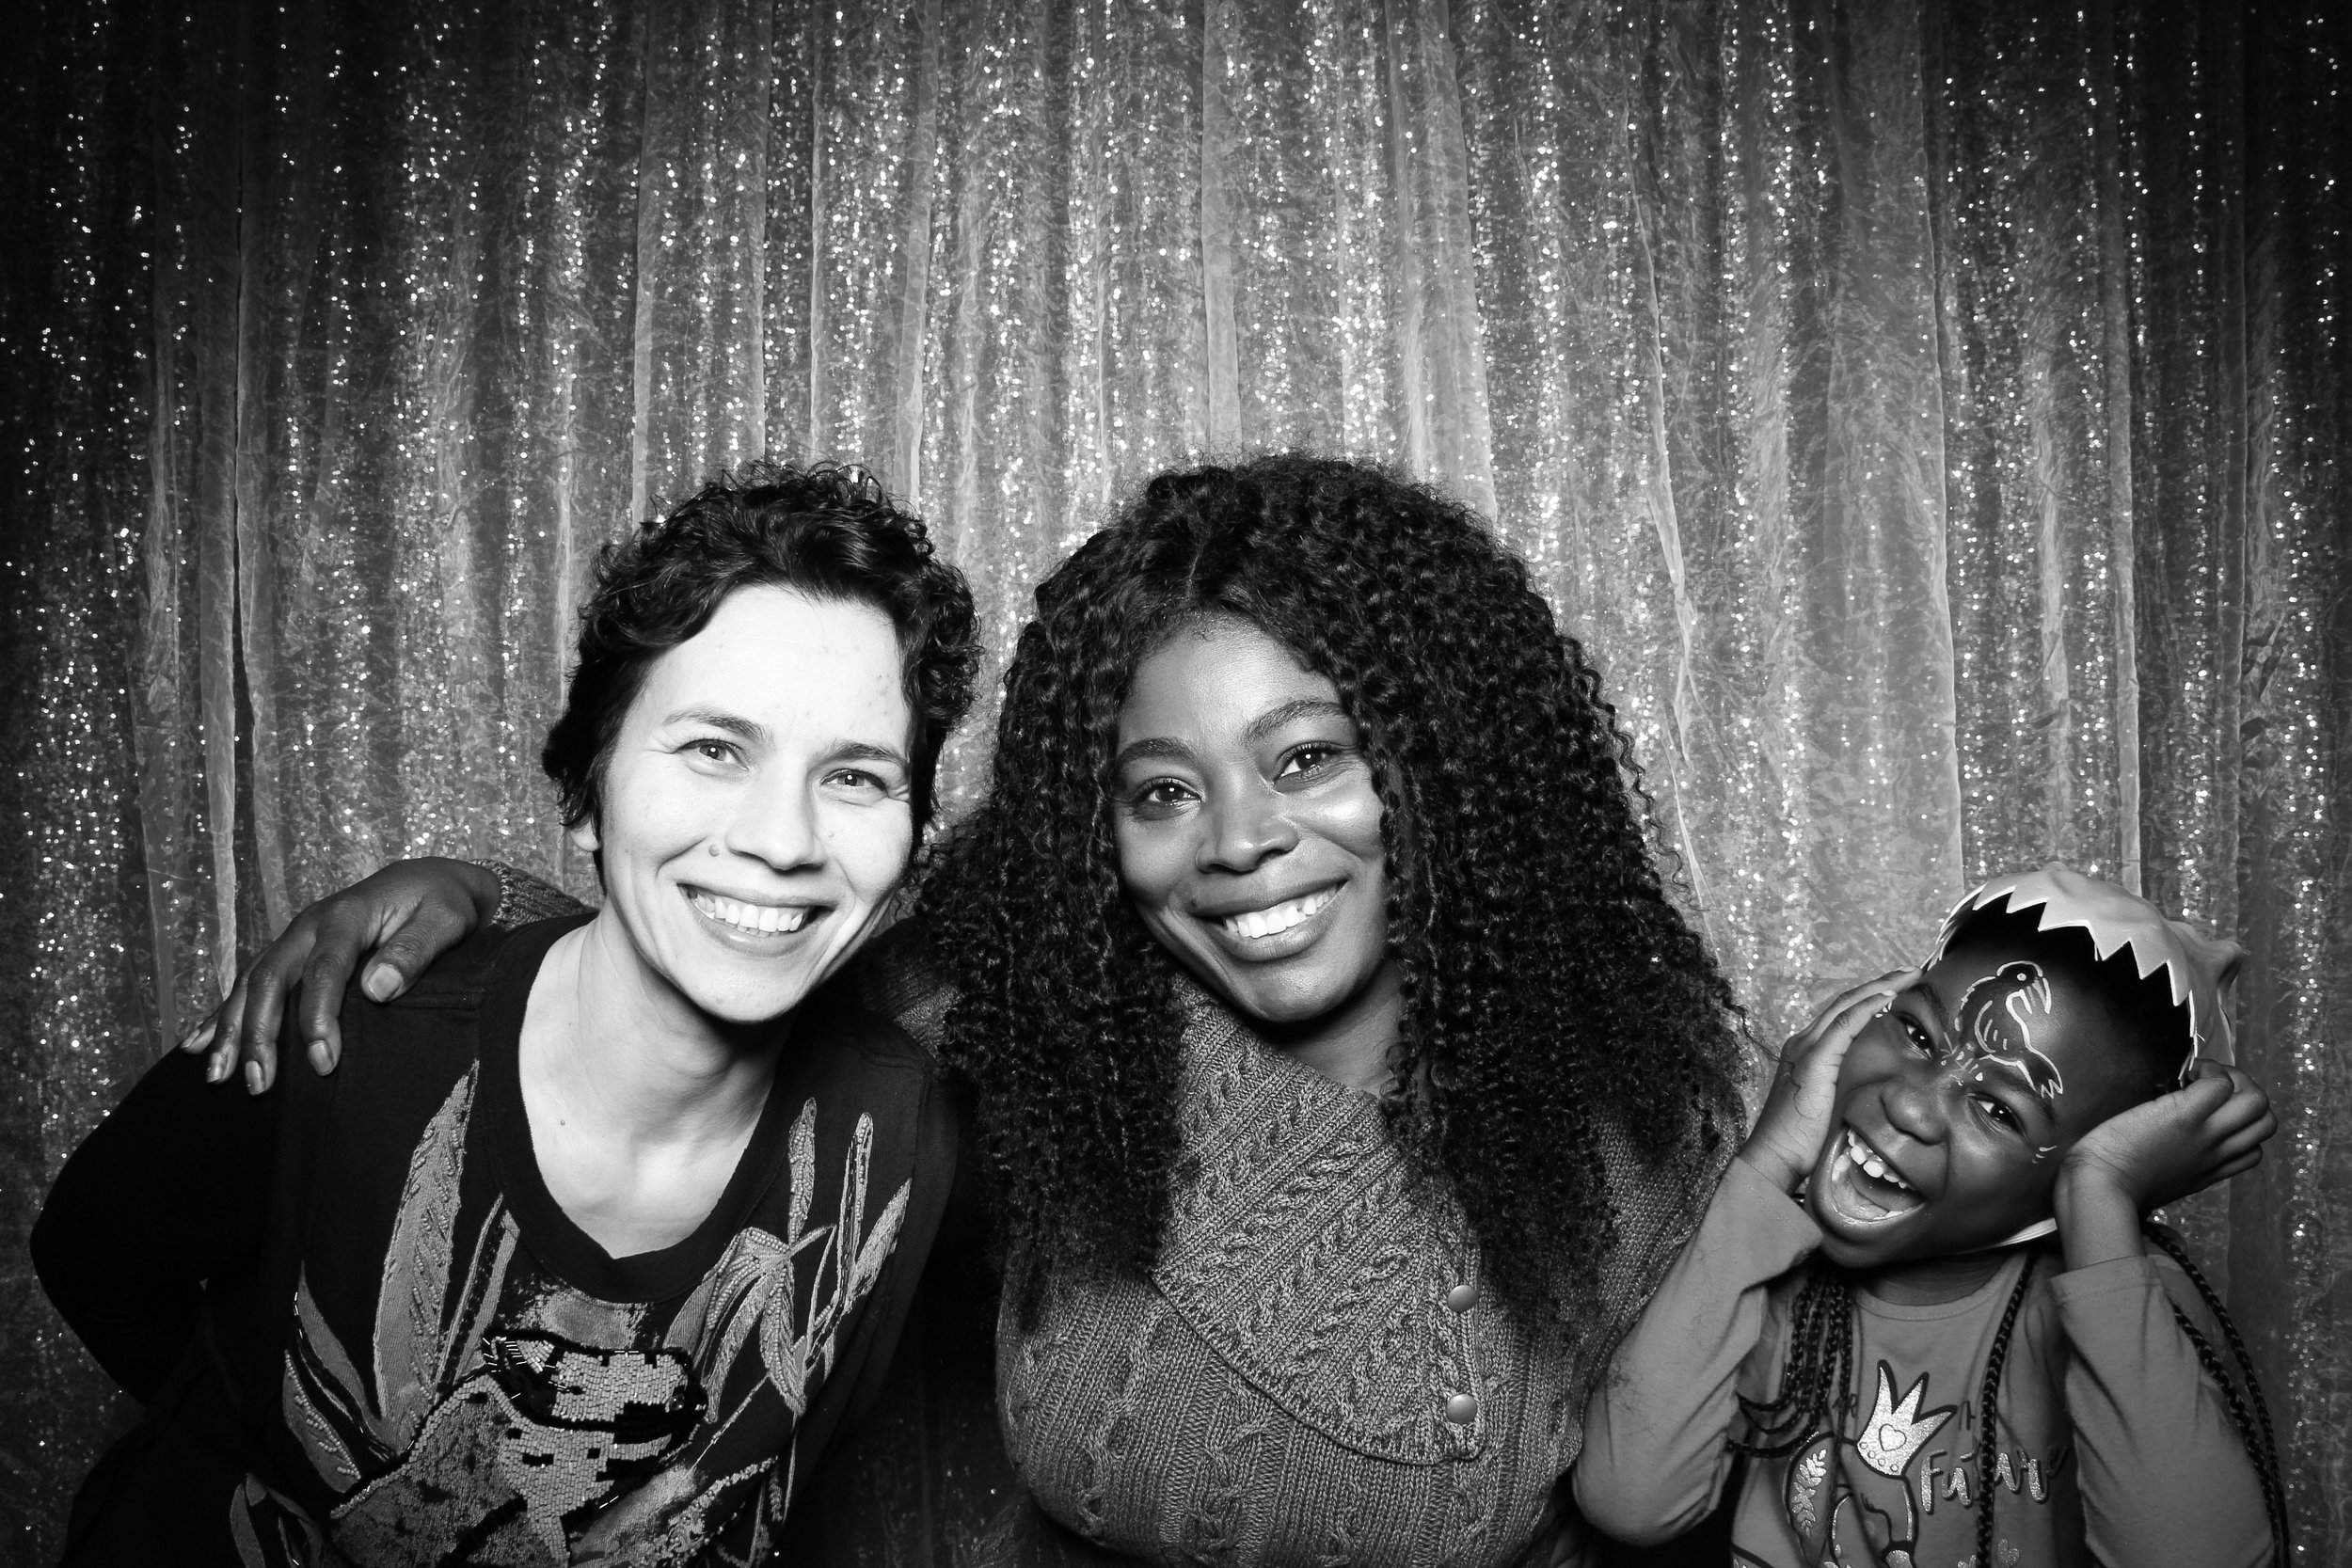 Chicago_Vintage_Wedding_Photobooth_Downers_Grove_23.jpg